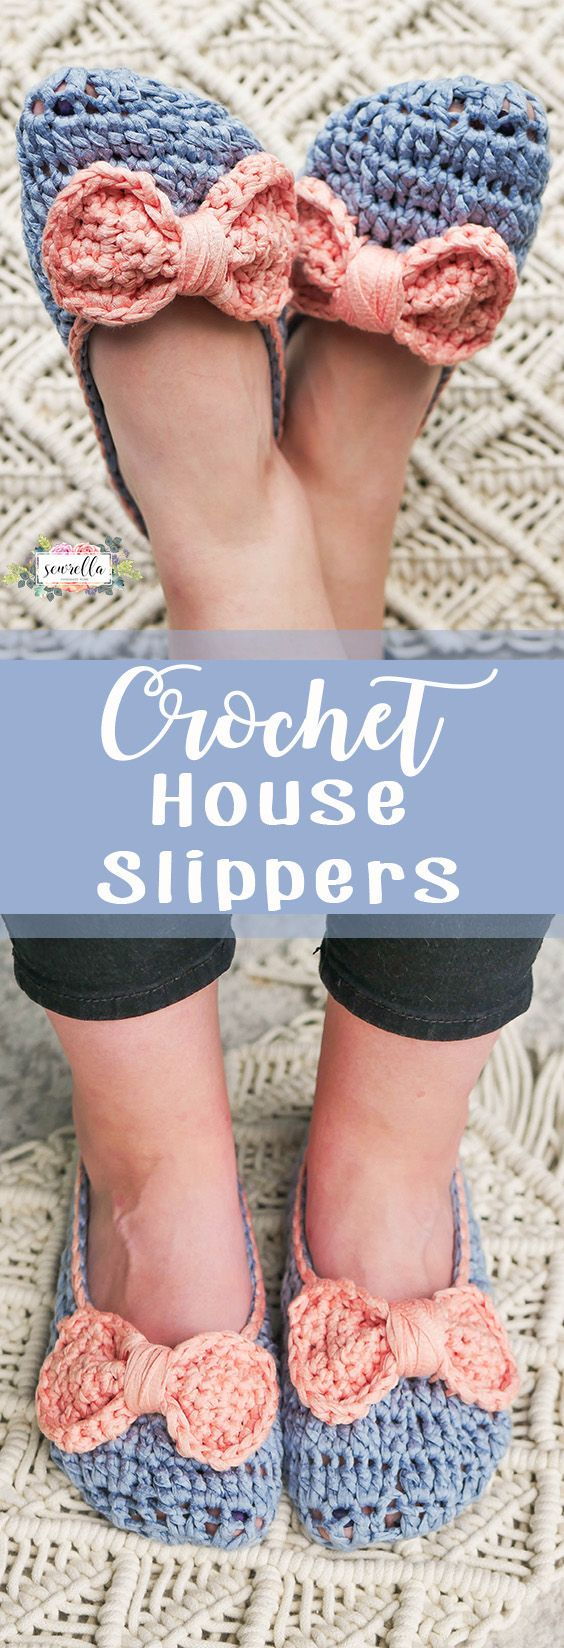 Make these easy DIY crochet house slippers with adorable bows! They are soft, comfy, and breathable - perfect for summer!